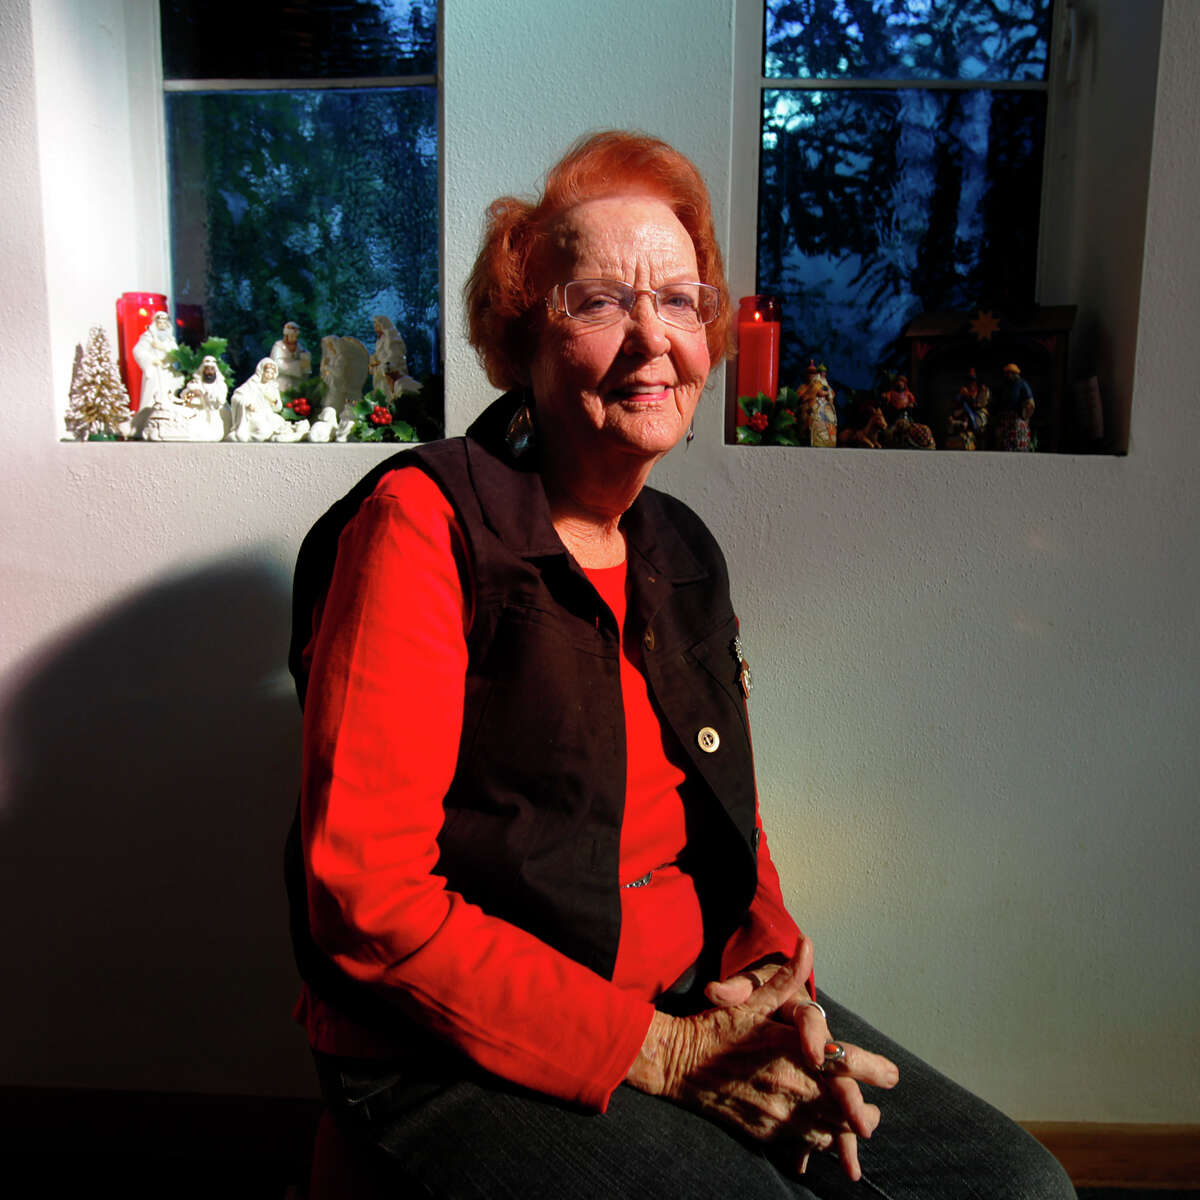 Lorraine Rogers, 81, has been a member of Beacon Hill Presbyterian Church since 1957. Rogers has also collected Nativity scenes from around the world for over 60 years. During Advent and through Christmas, Rogers and the church has on display over 100 Nativity scenes most of which belong to Rogers. The Nativity scenes will remain on display for several weeks after Christmas according to Rogers. (Kin Man Hui/kmhui@express-news.net)